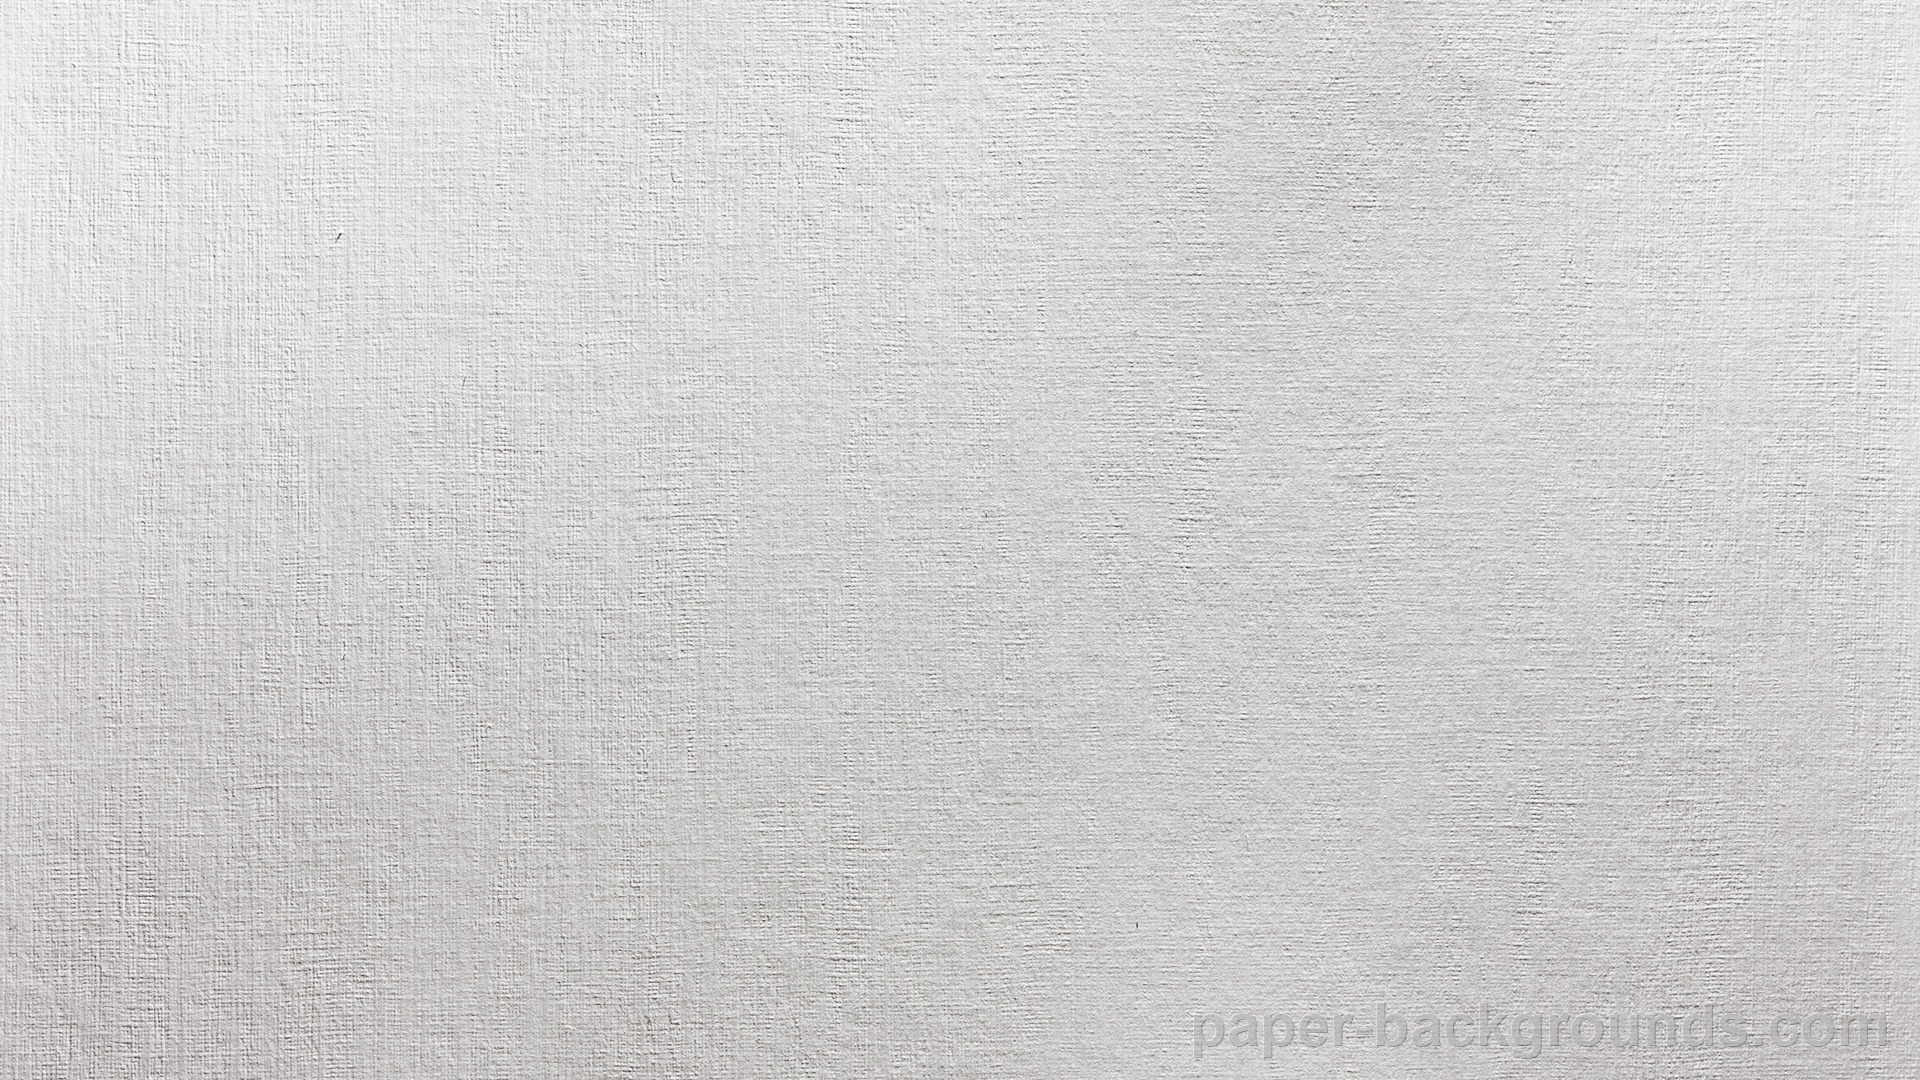 paper natural background texture ground back white textured 1920x1080